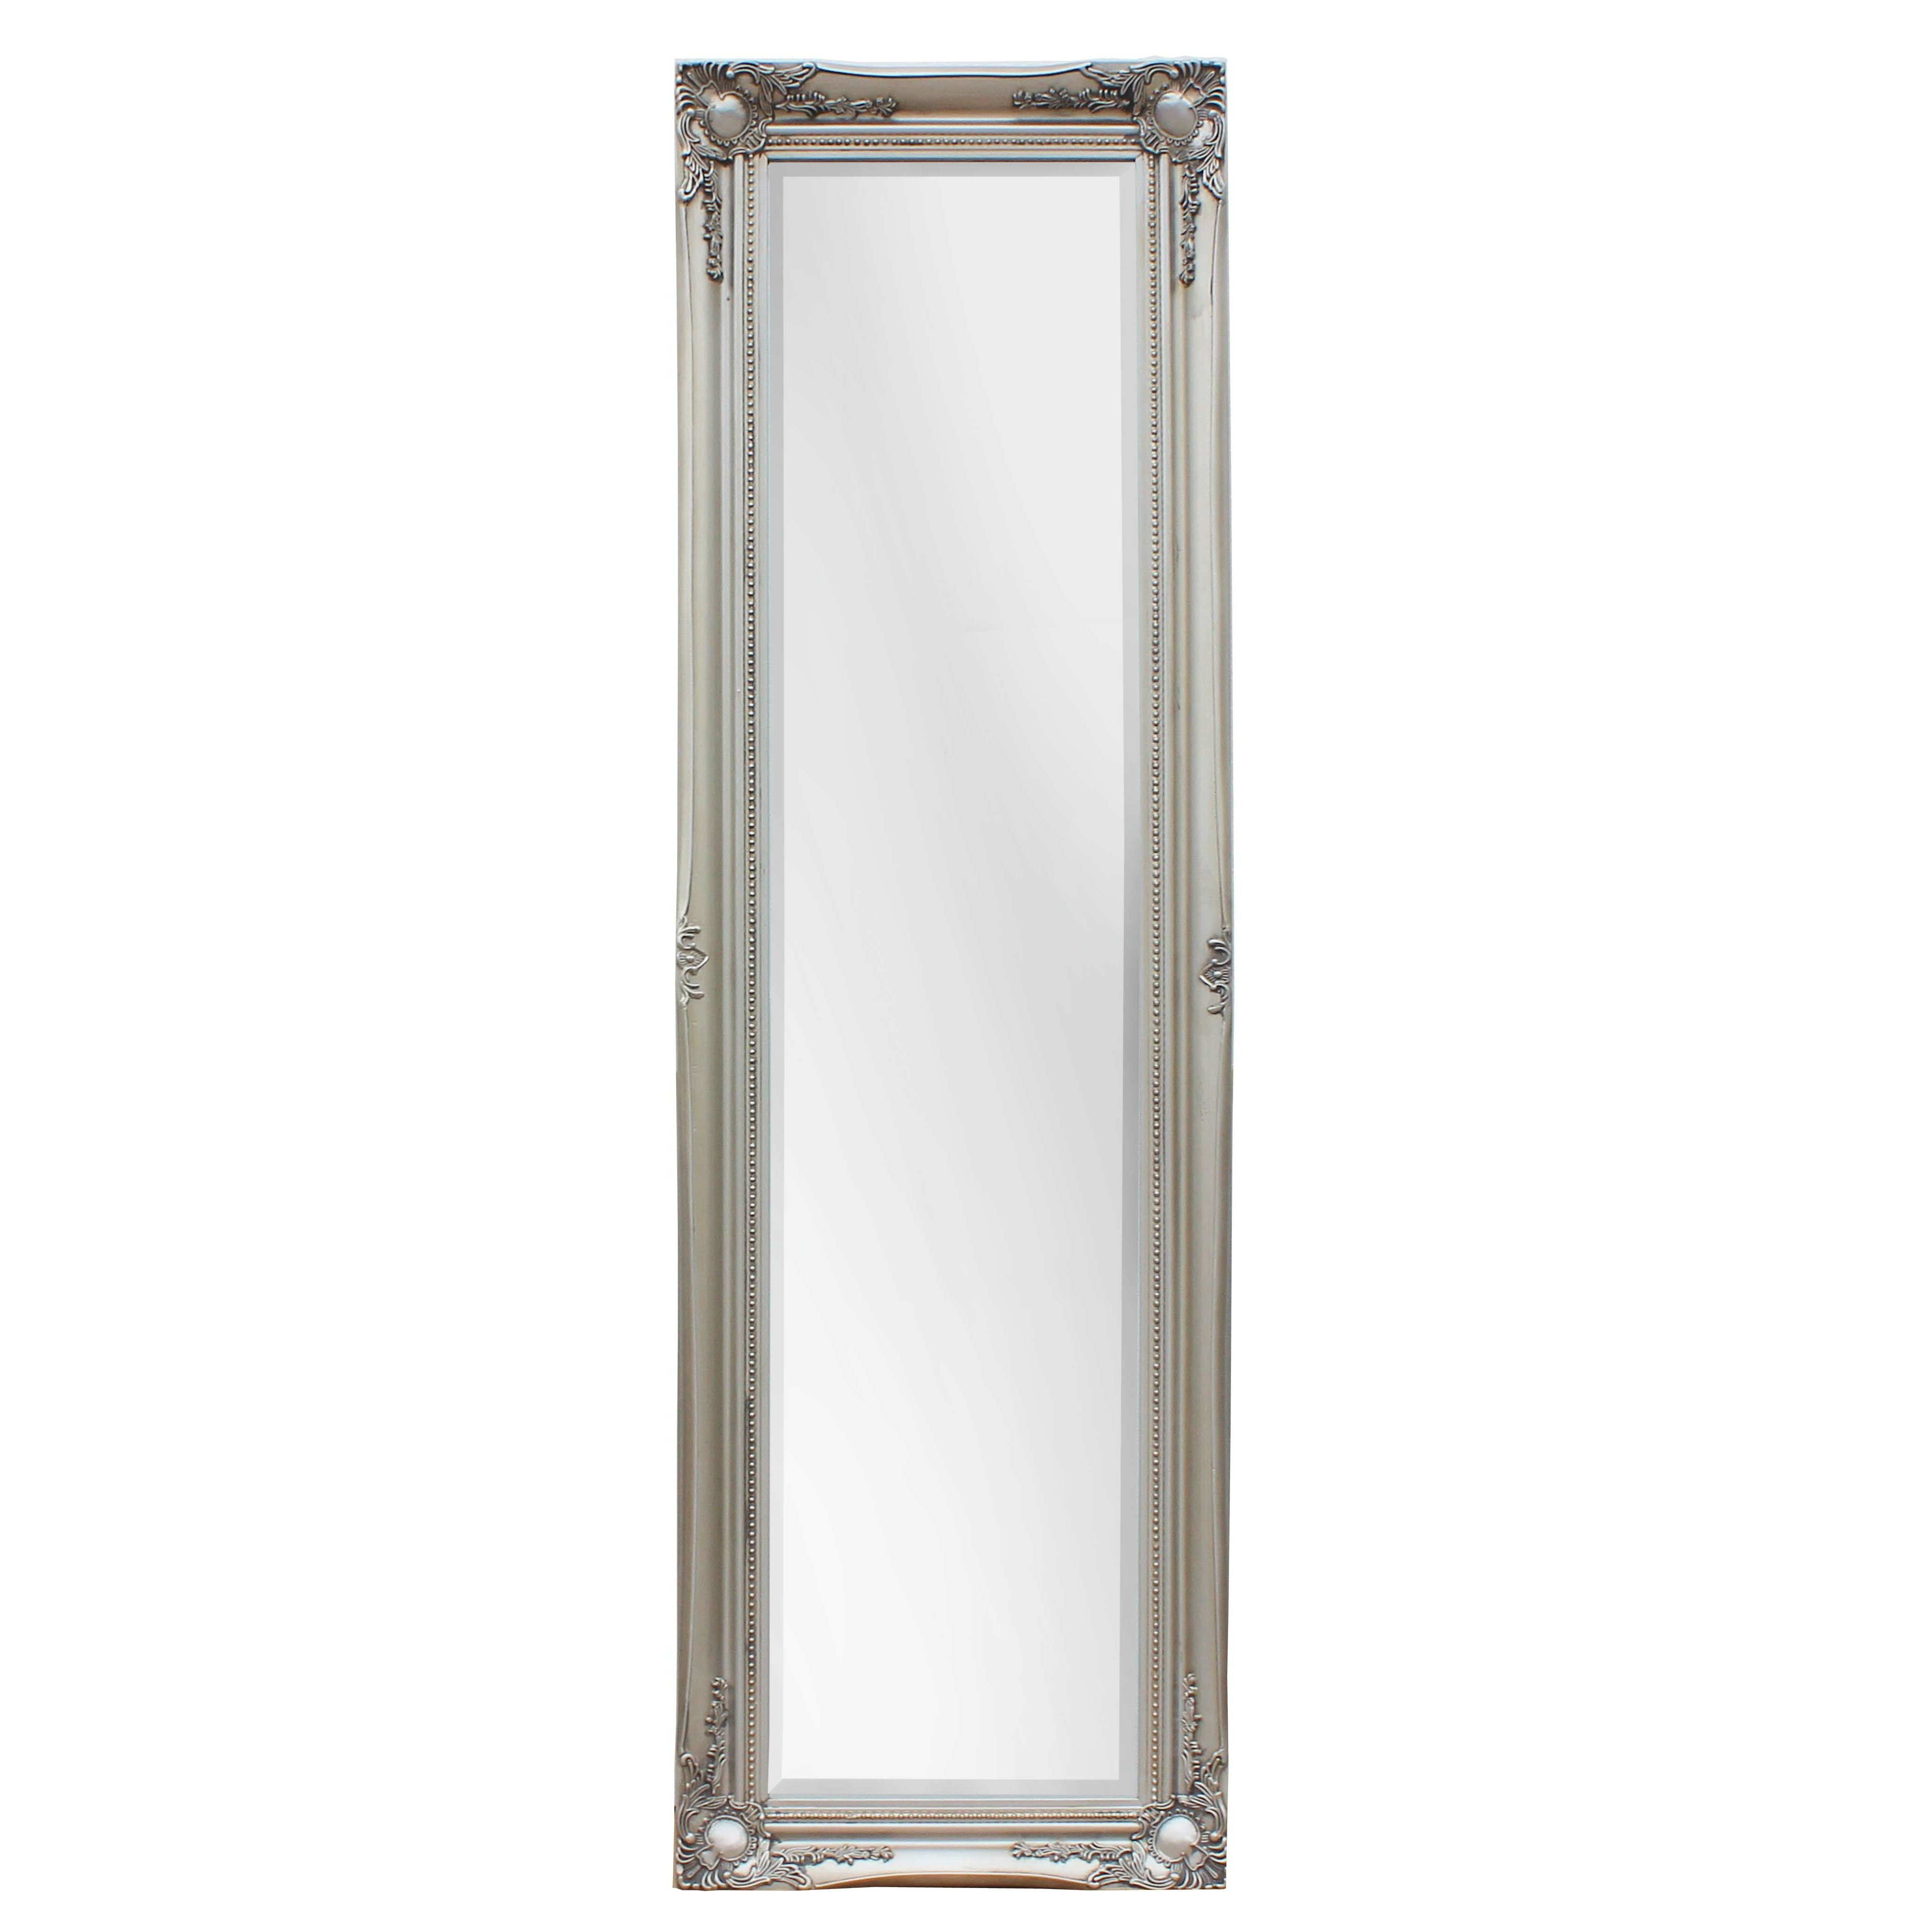 Selections by chaumont maissance floor mirror reviews for Glass floor mirror